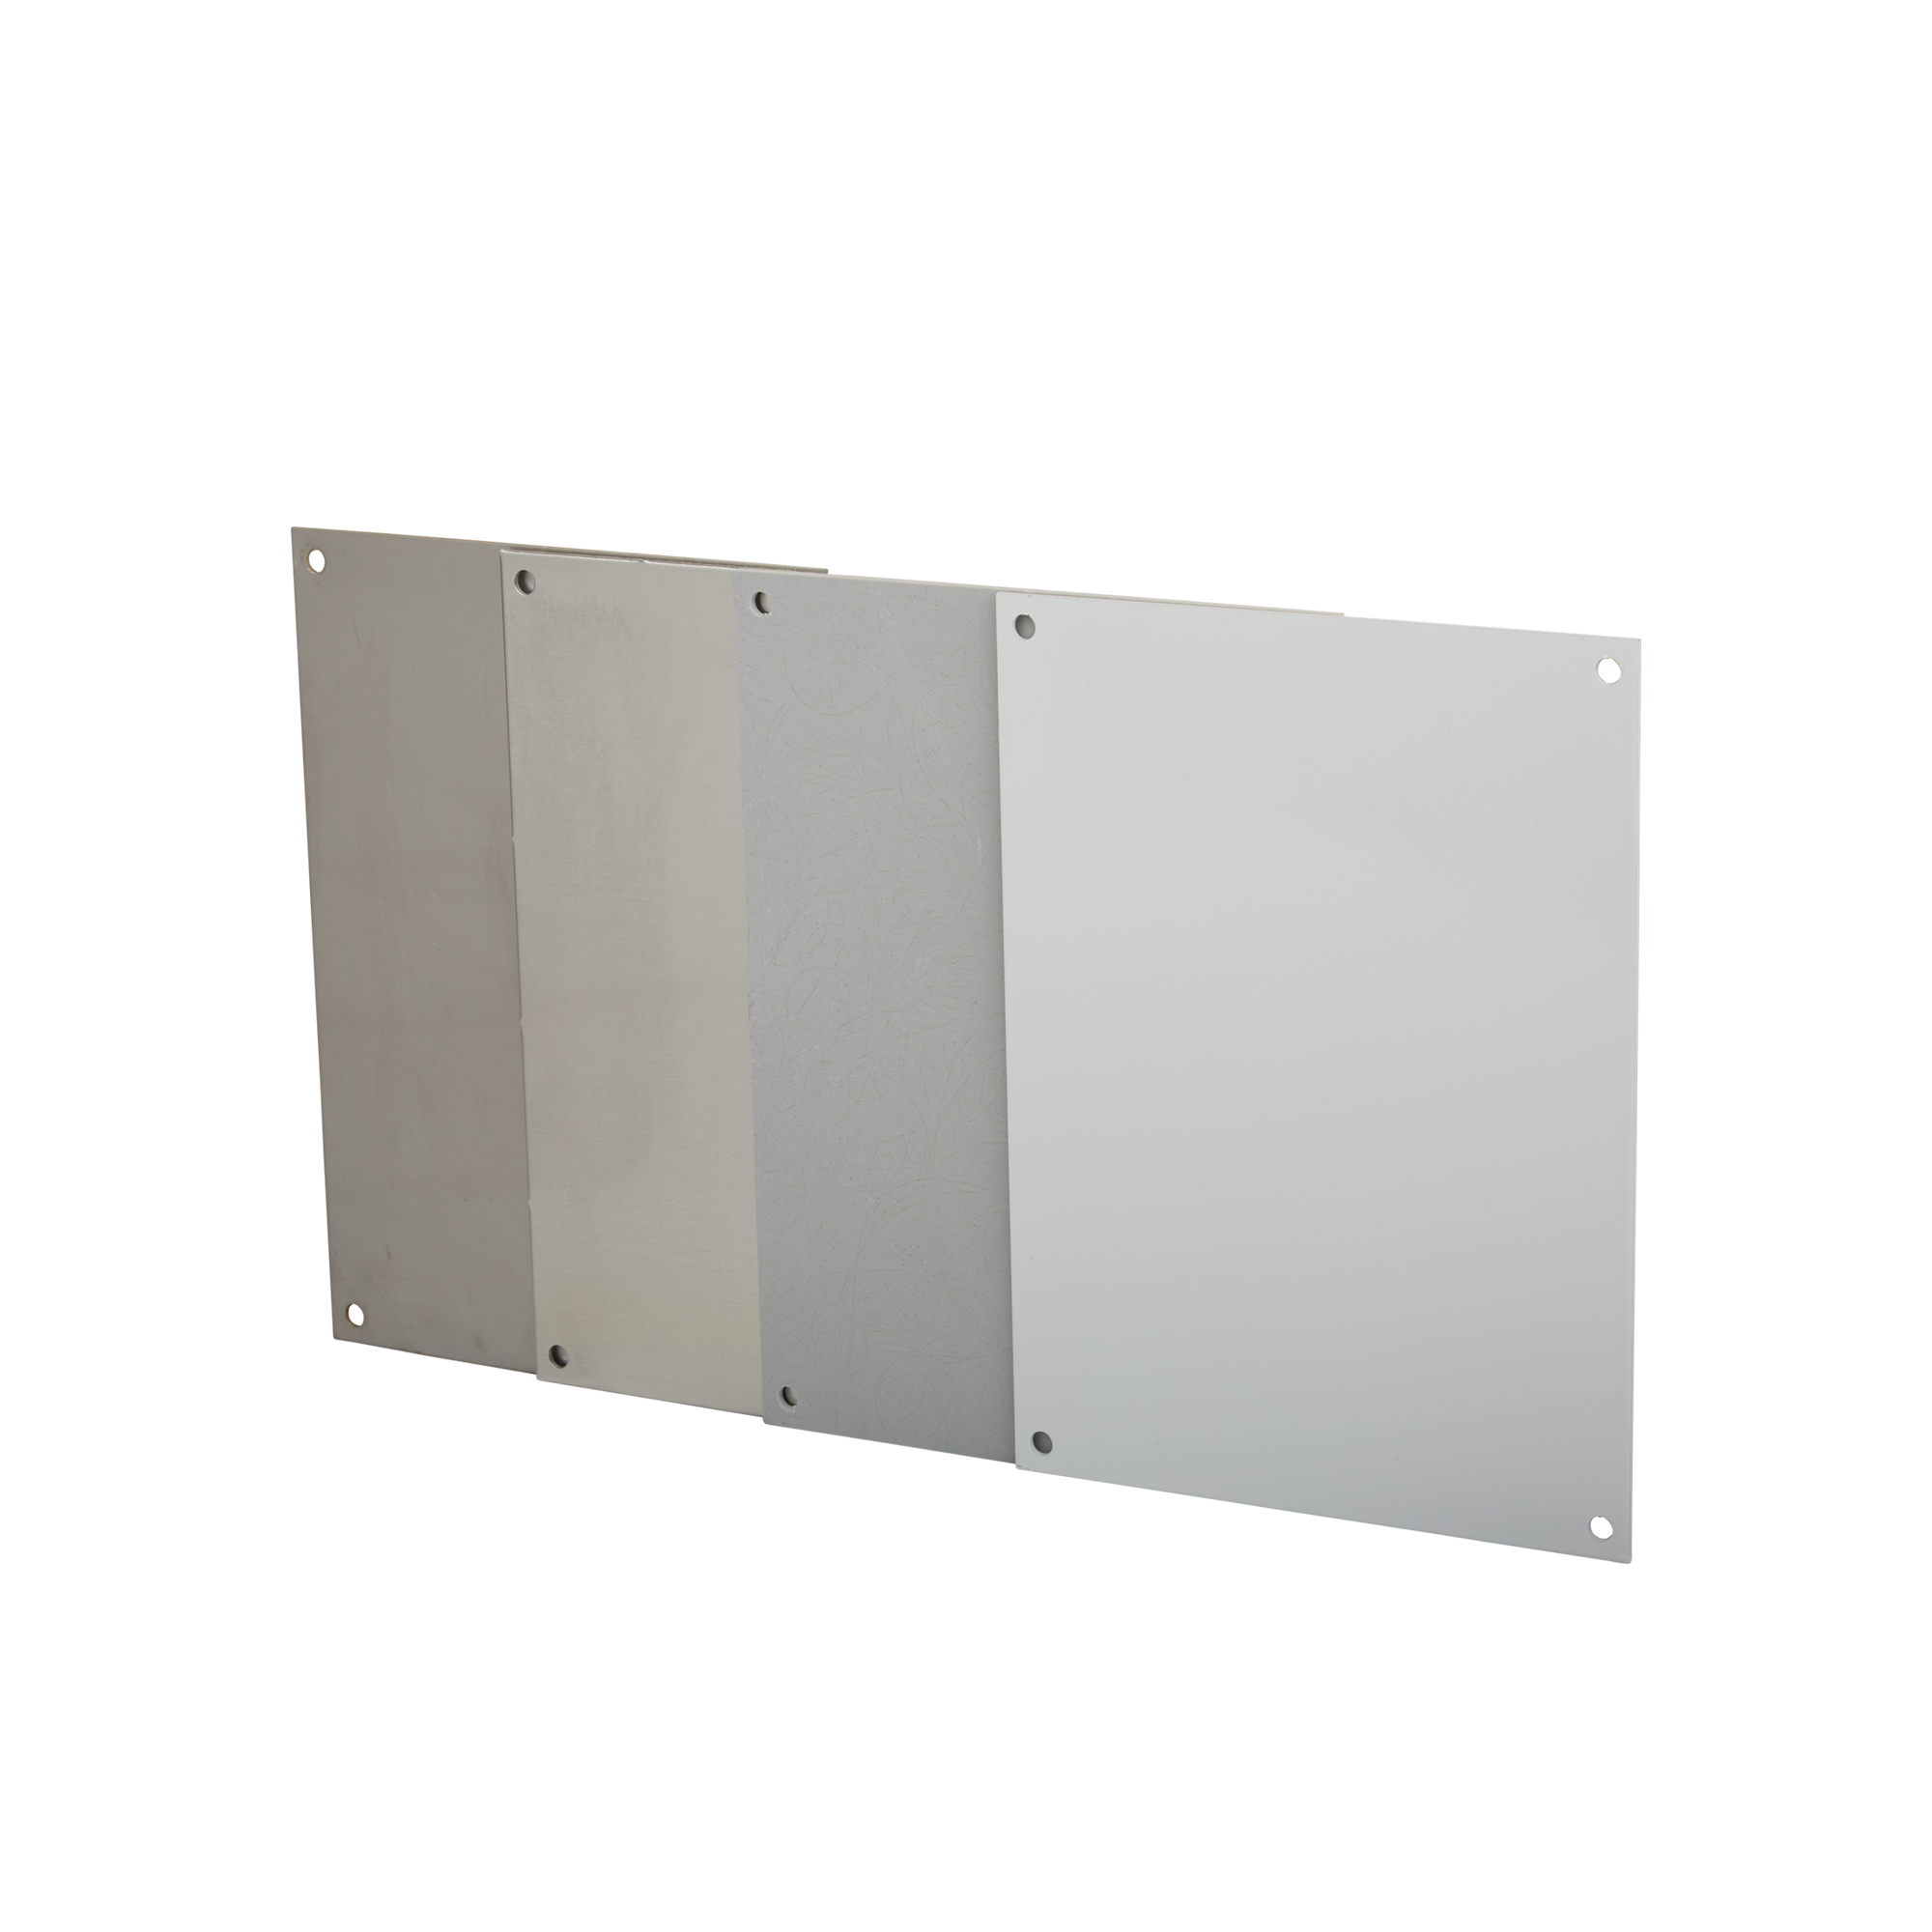 "Stahlin (RobRoy) BP1412AL 12.88 x 10.88"" Aluminum Flat Enclosure Back Panel"